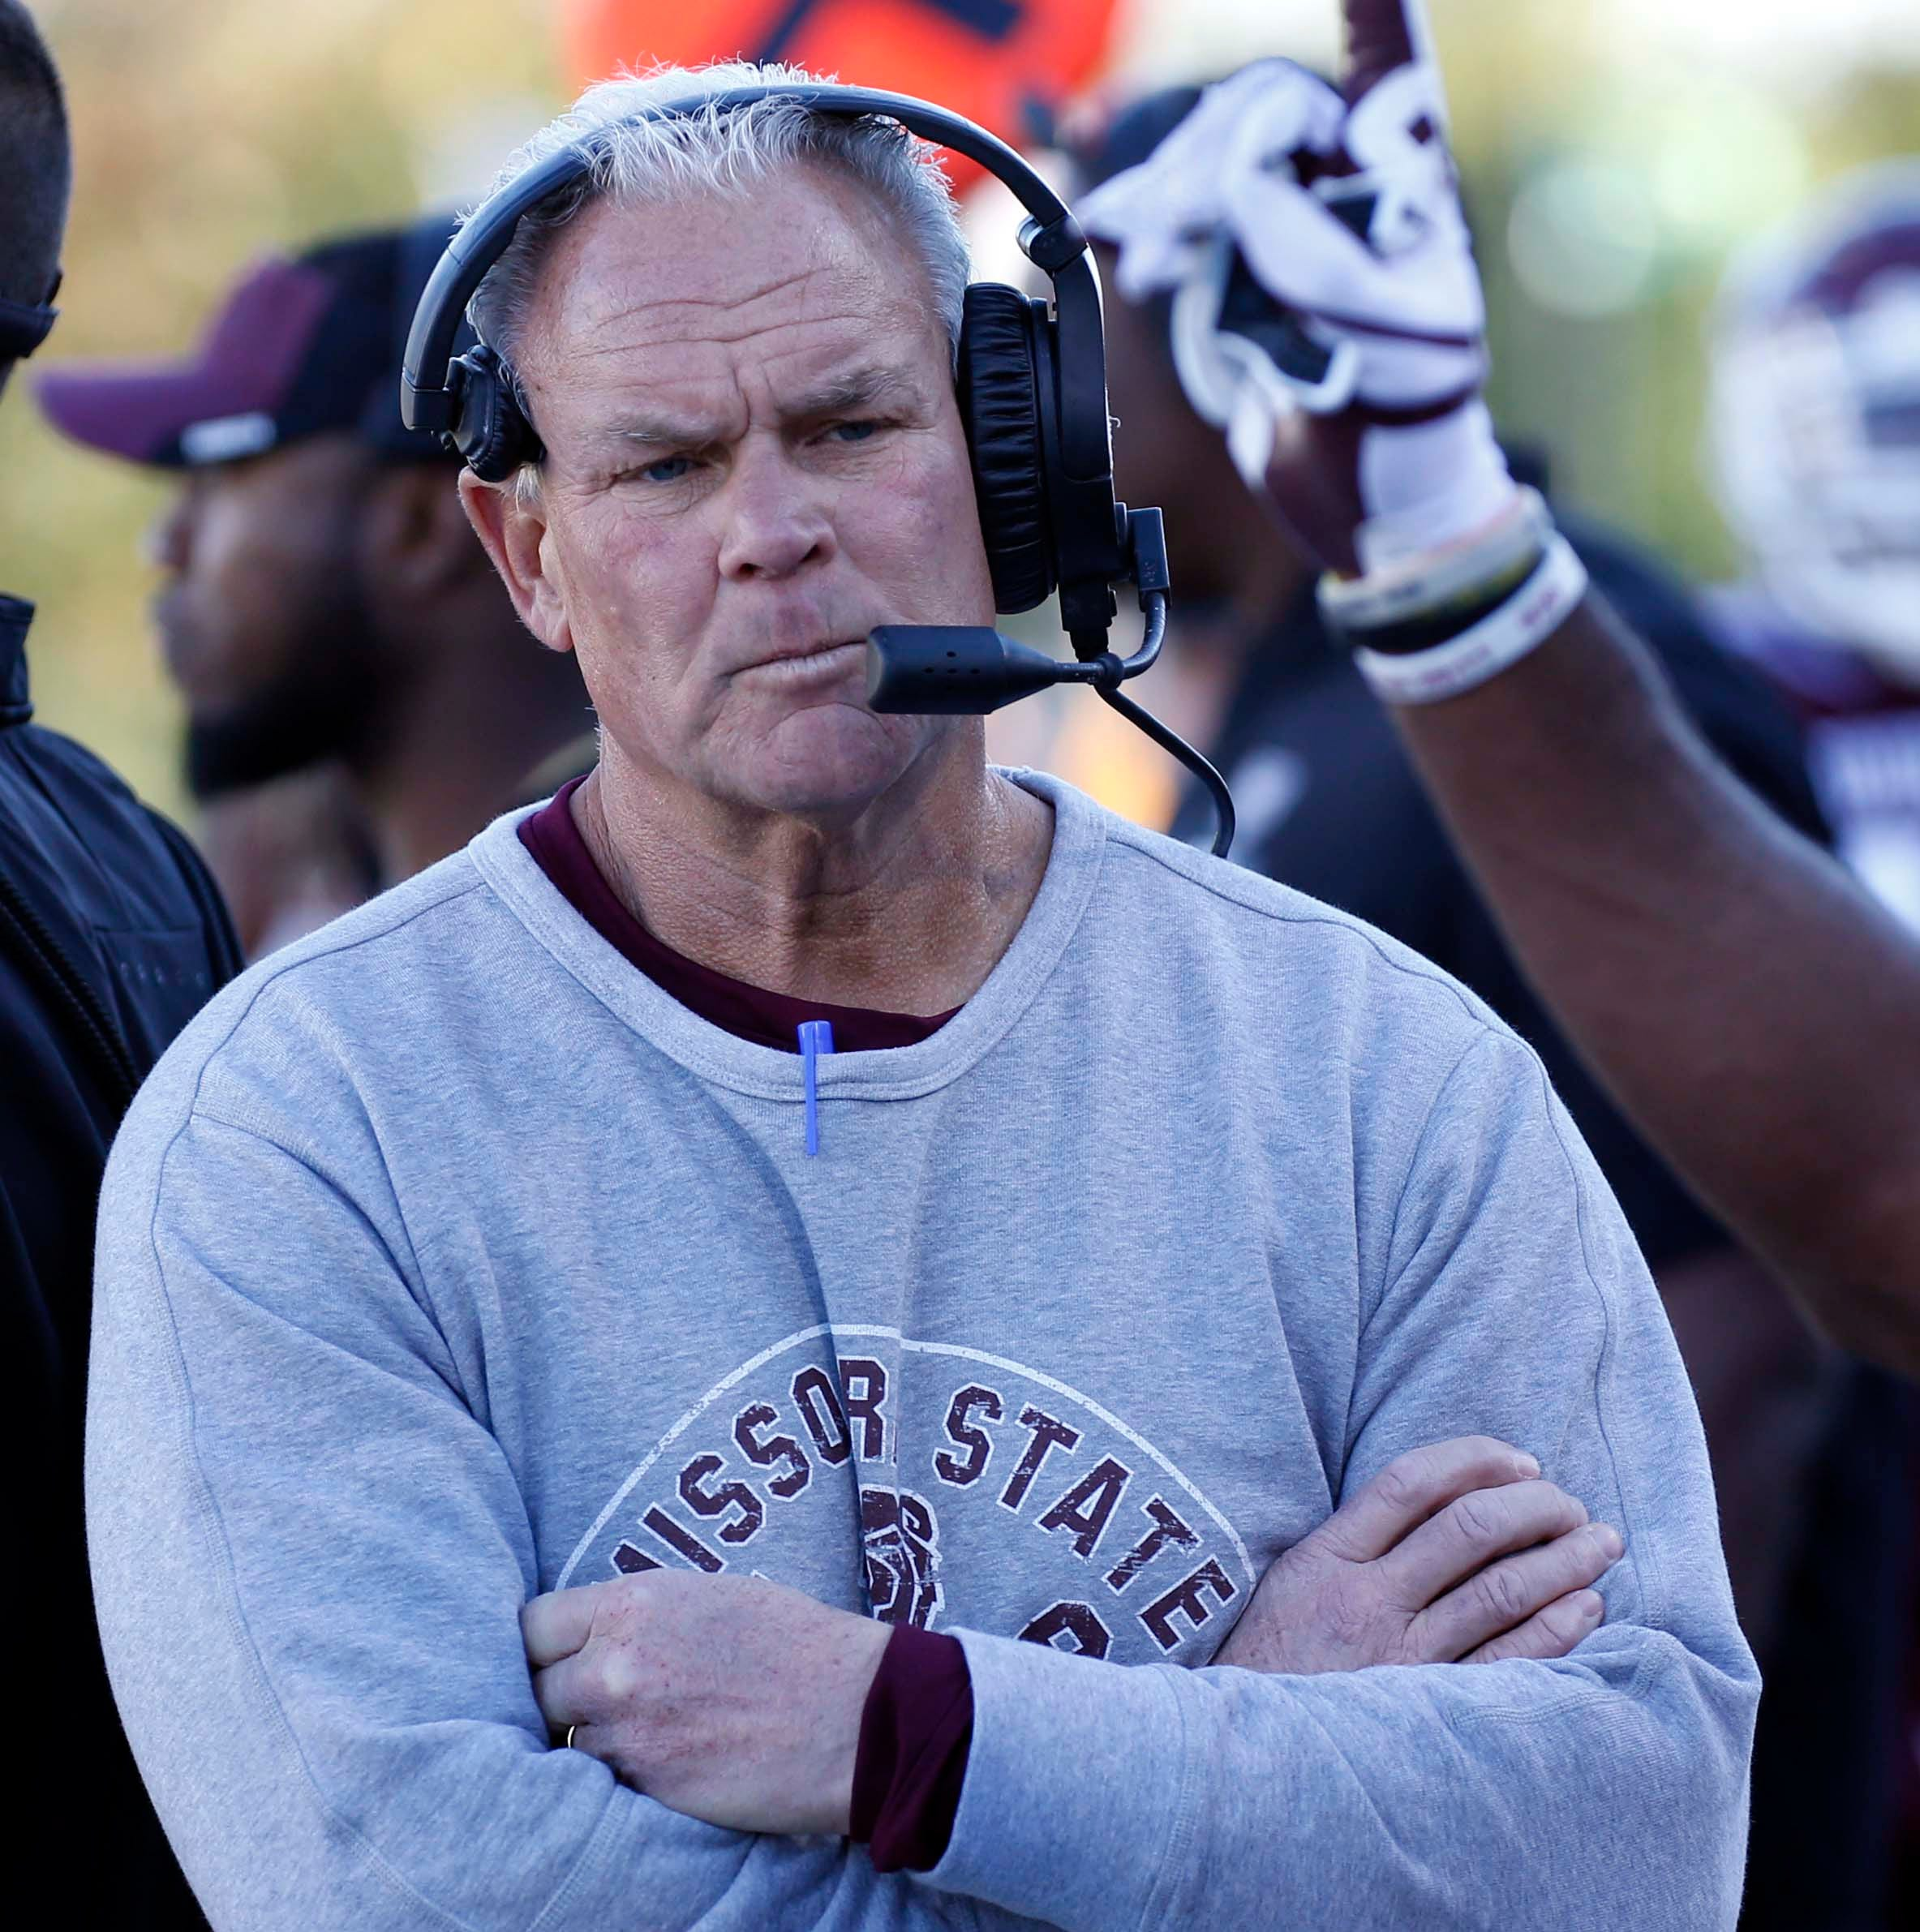 Missouri State coach Dave Steckel appearing disappointed during the Bears' loss against Western Illinois at Plaster Field in Springfield on Oct. 20, 2018.